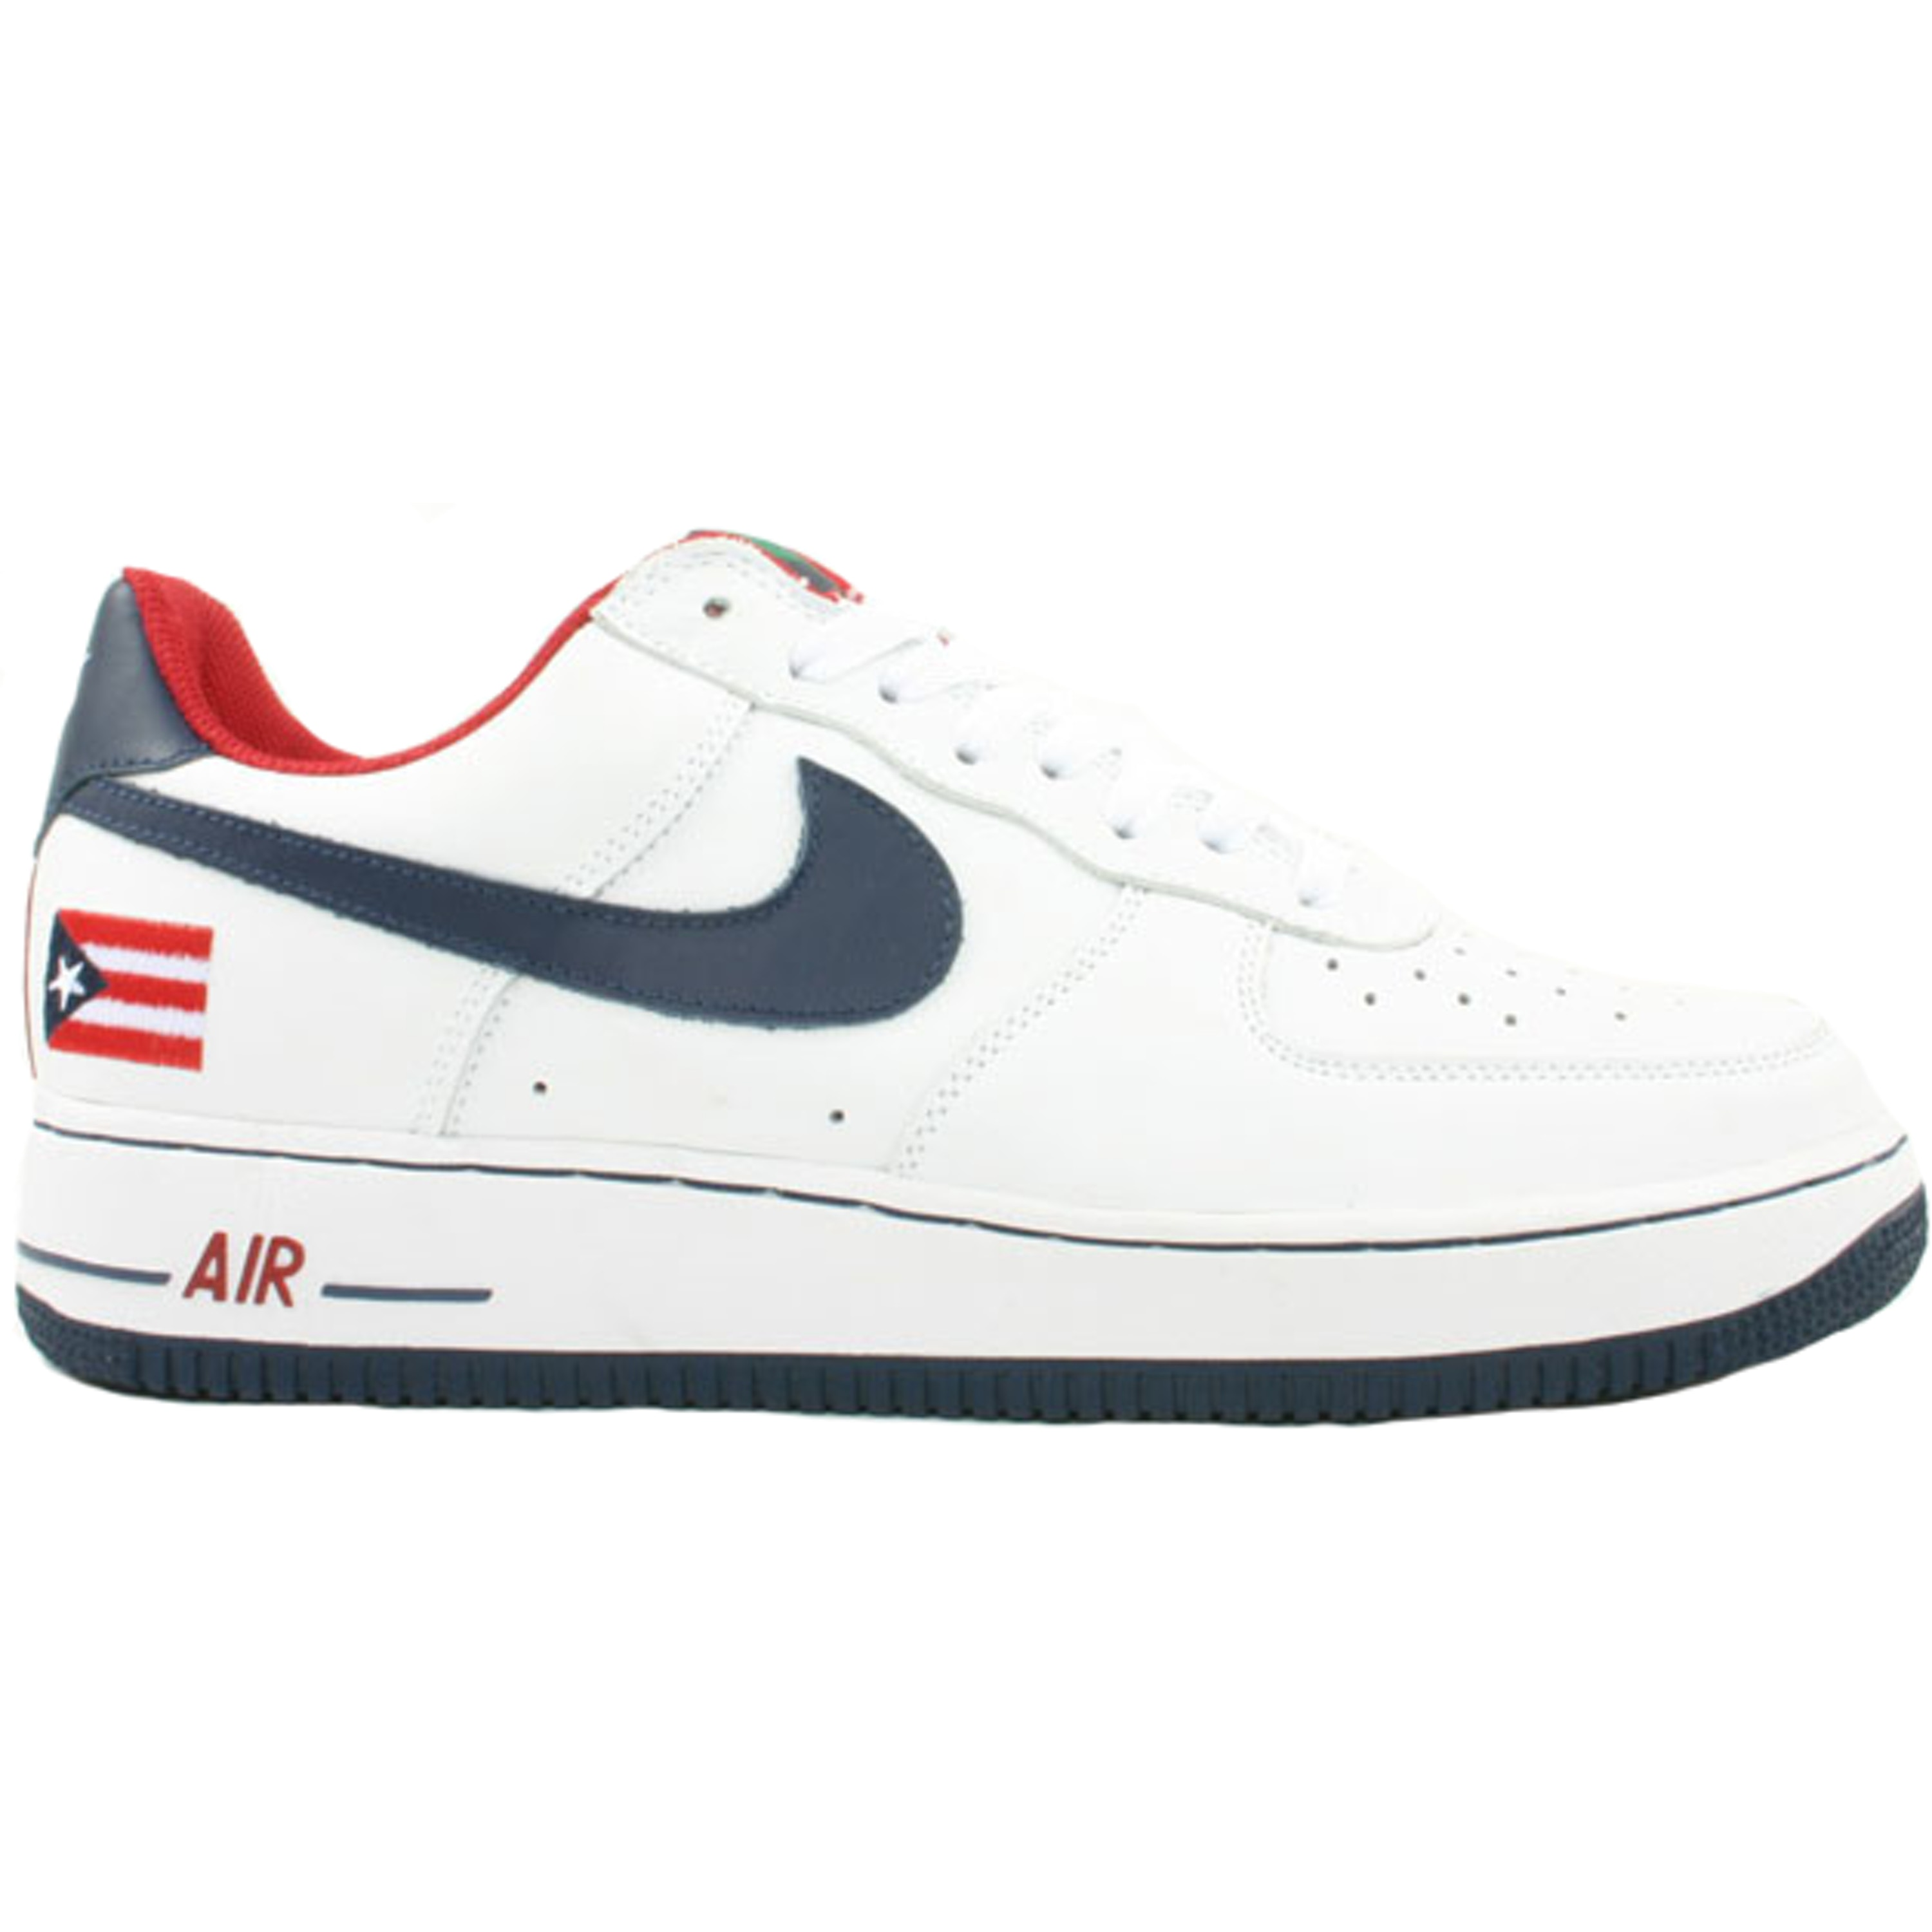 Nike Air Force 1 Low Puerto Rico 6th Edition (306353-146)